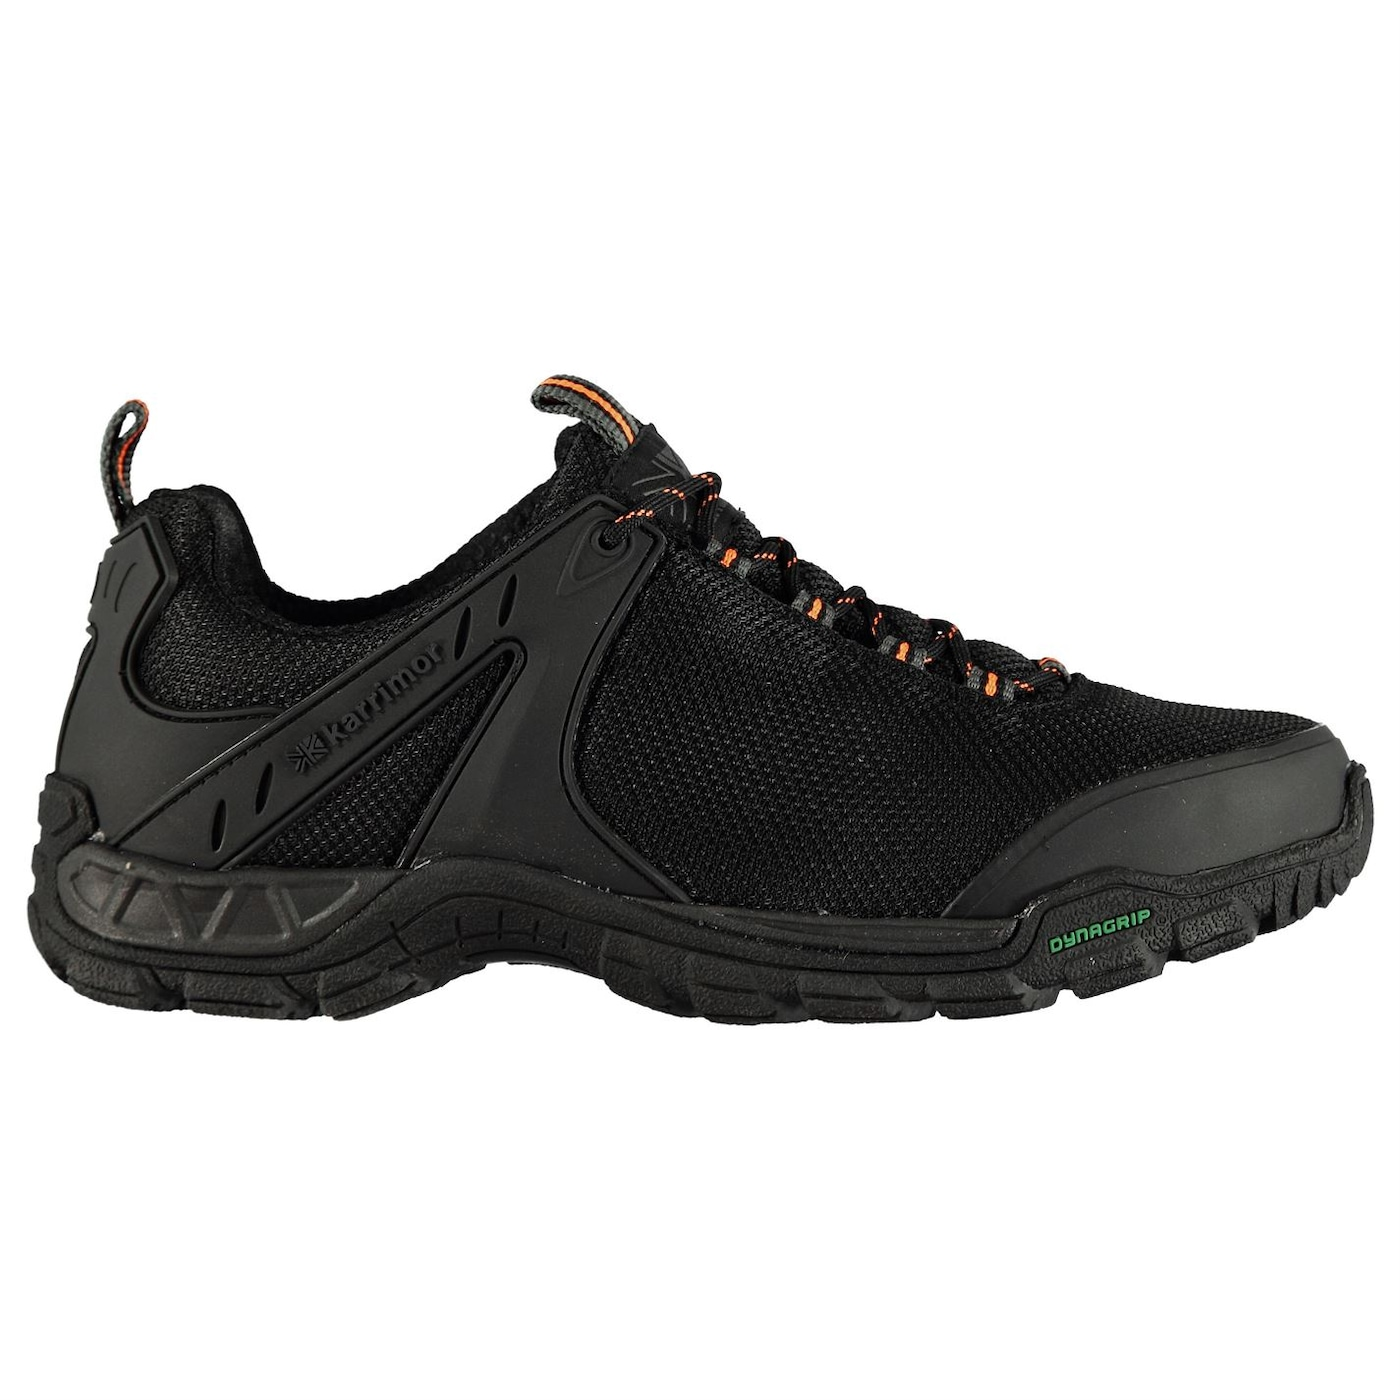 Karrimor Newton Mens Walking Shoes